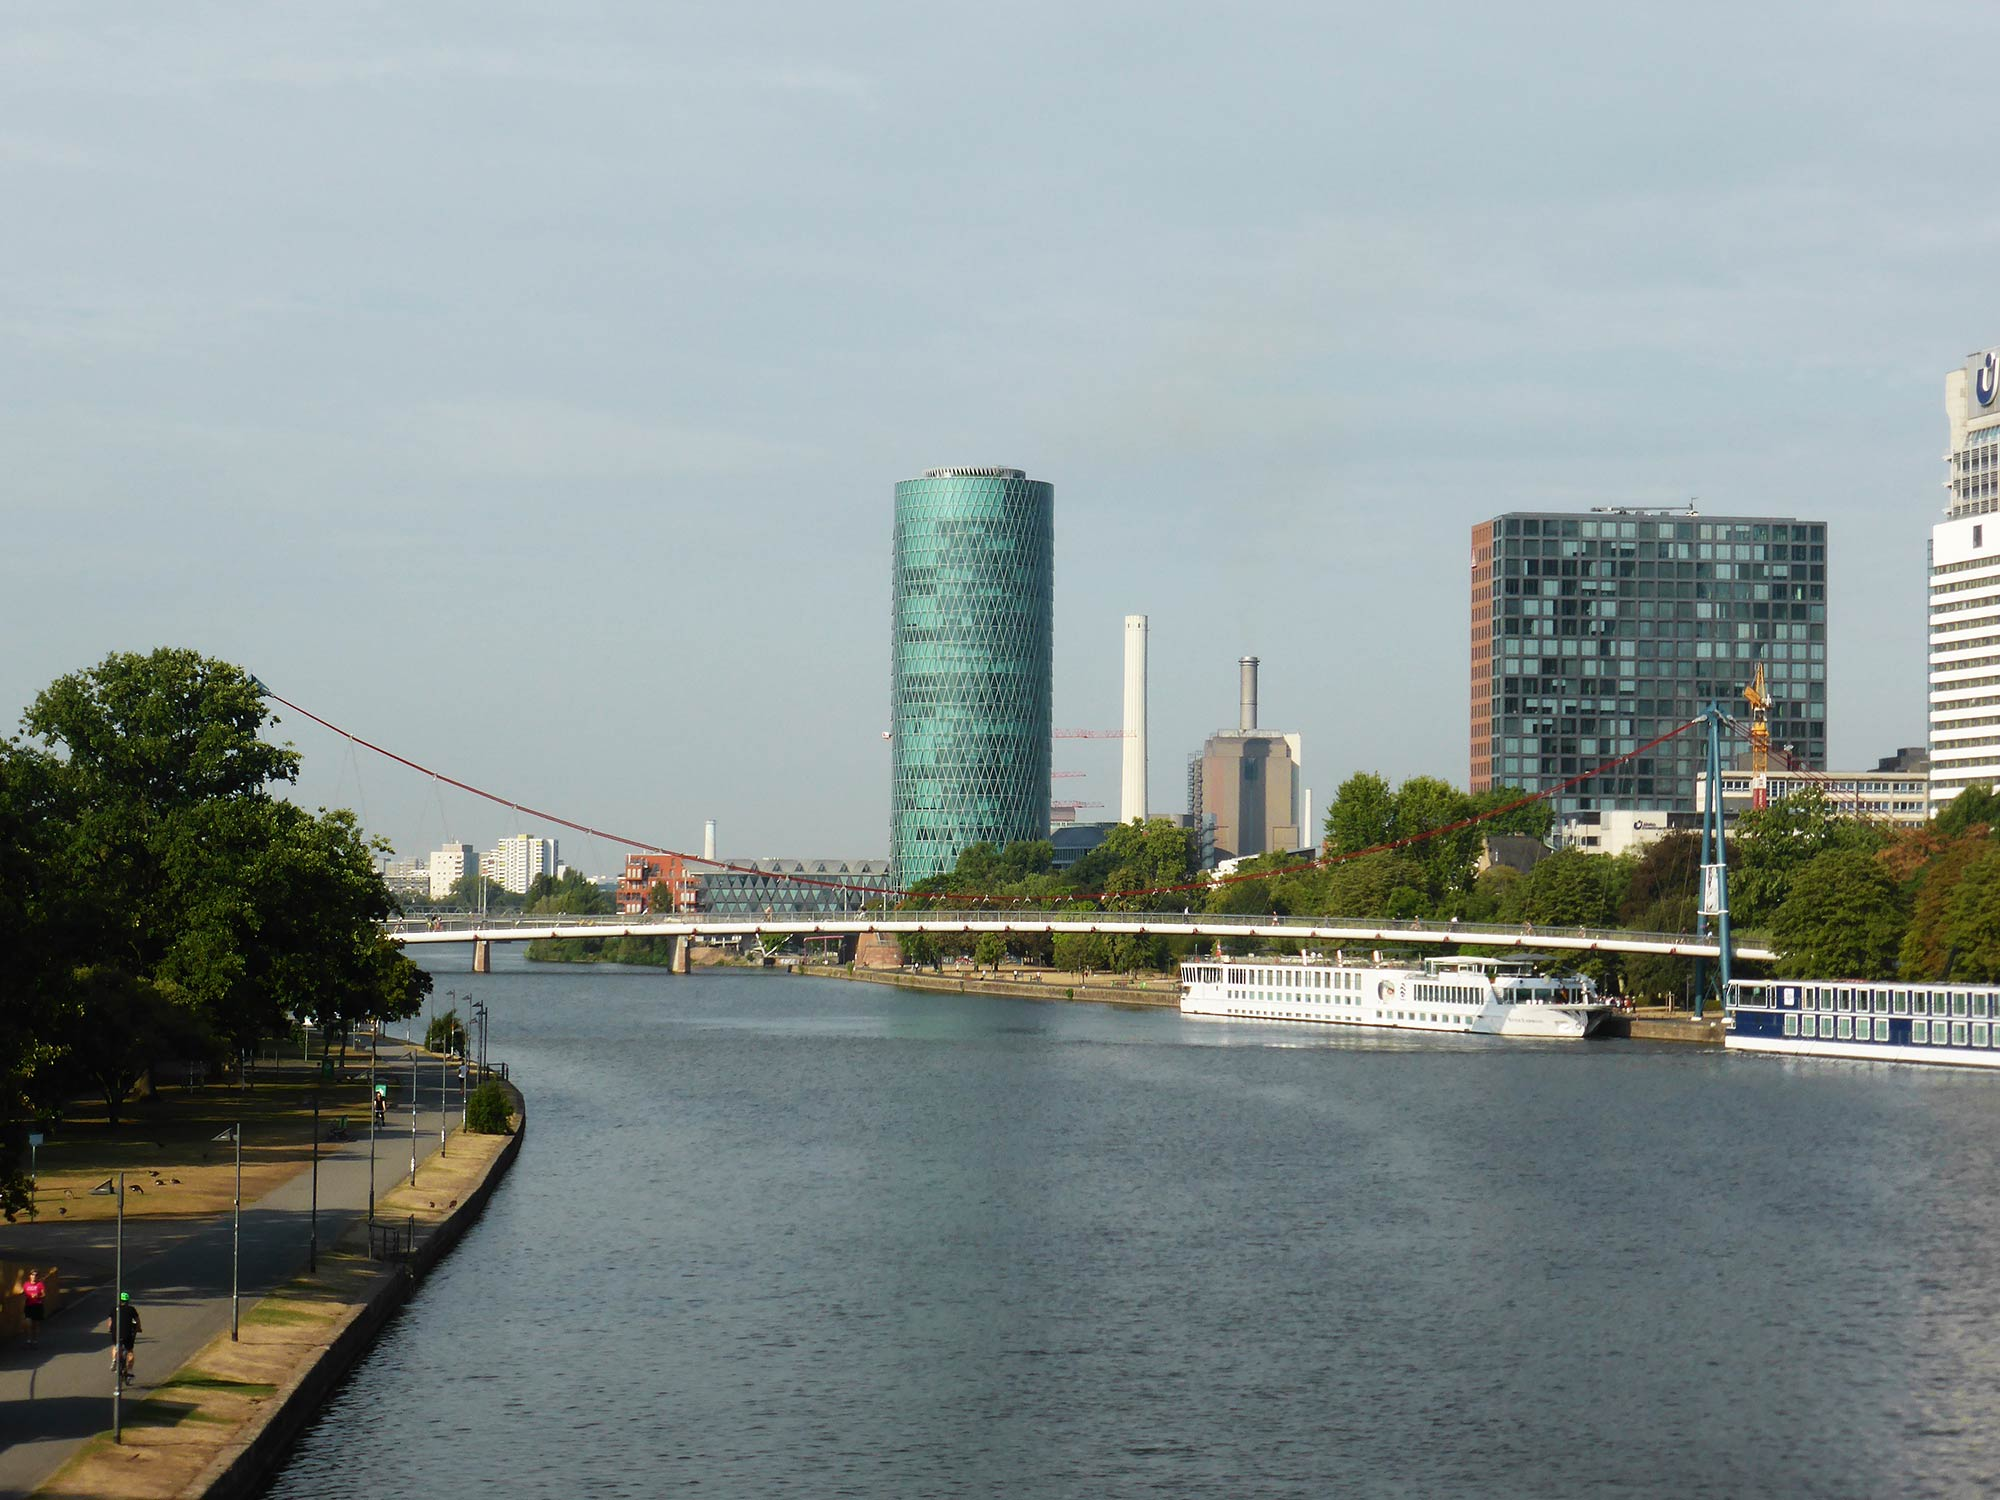 Mainufer in Frankfurt mit Westhafen in der Bildmitte - Main Frankfurt